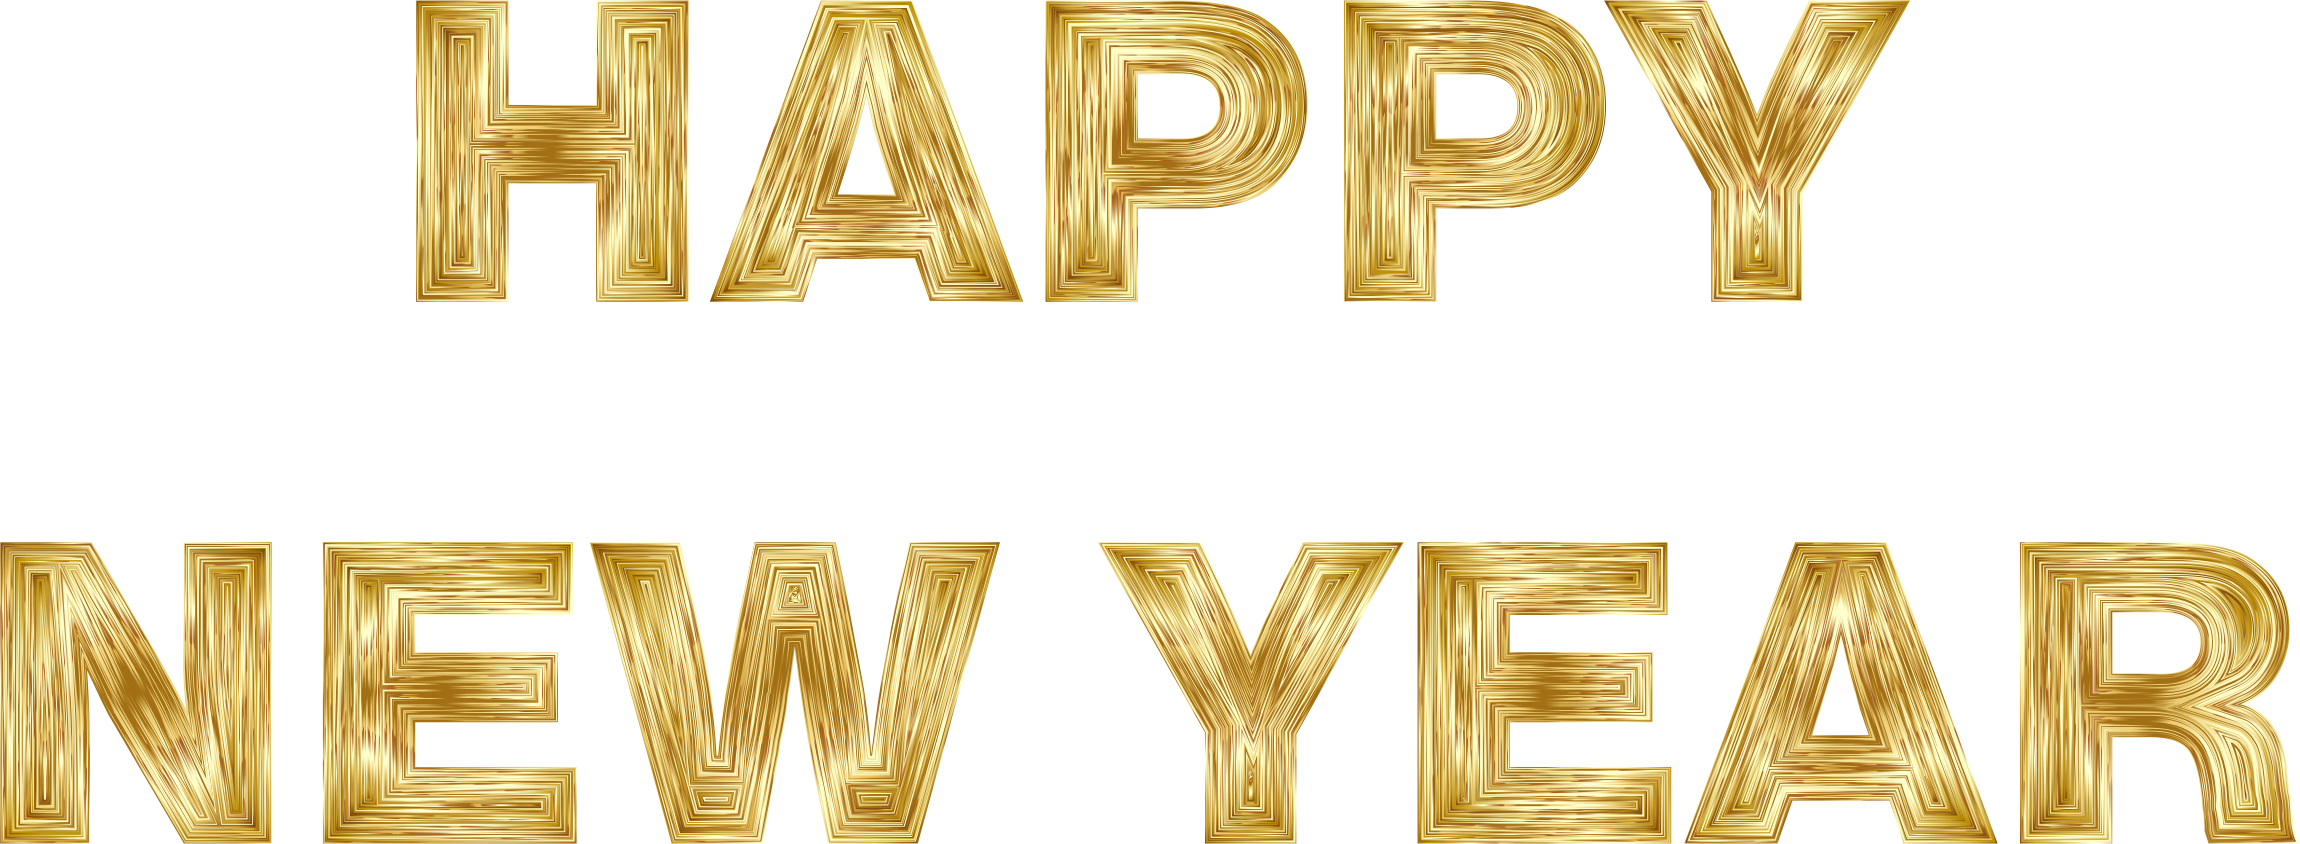 Clipart big image. Happy new year gold png clipart library download